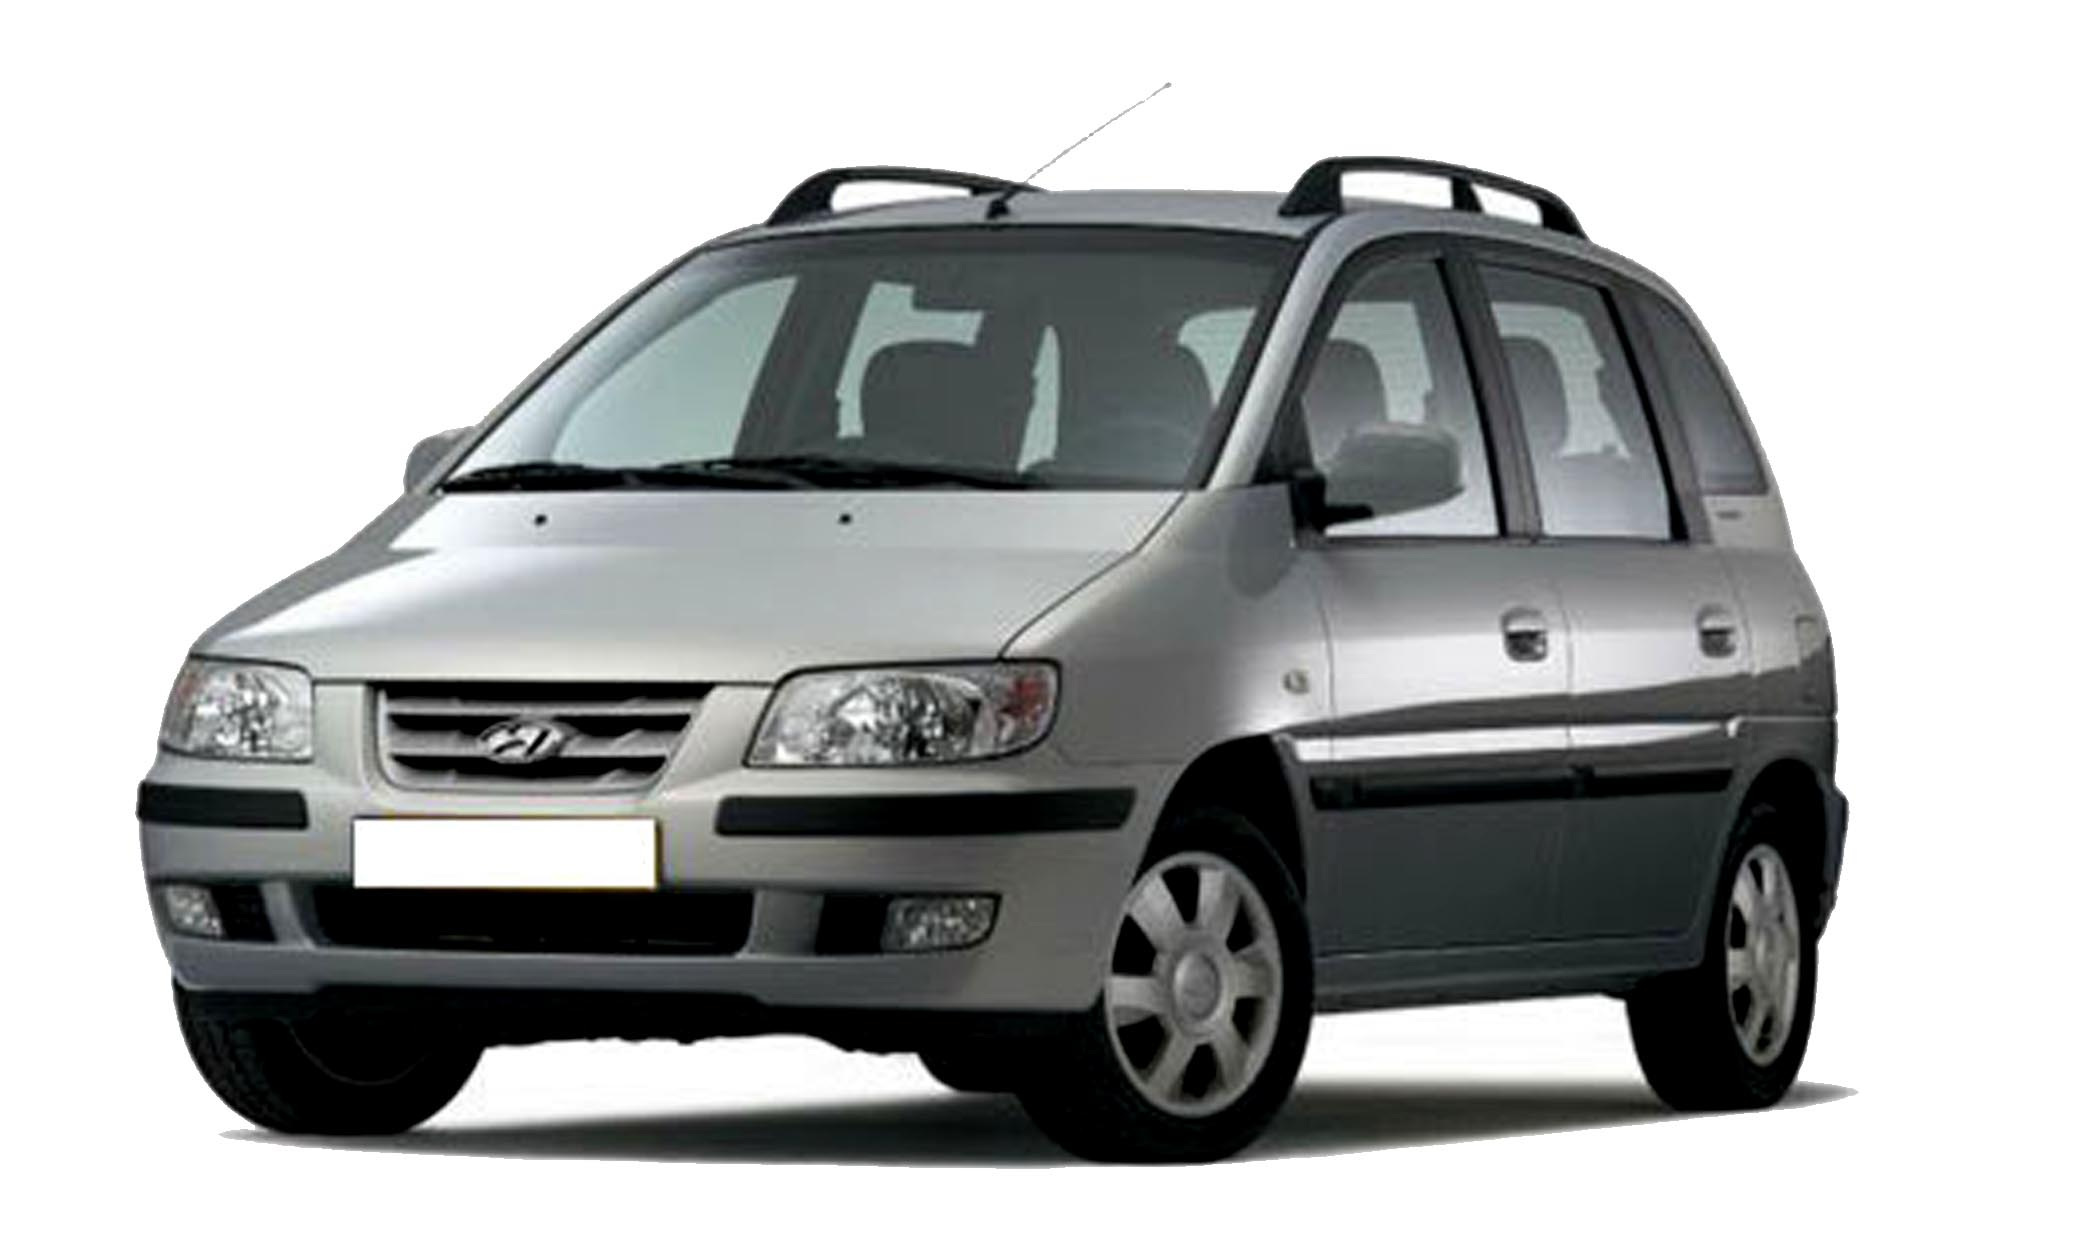 2005 Hyundai Matrix #5